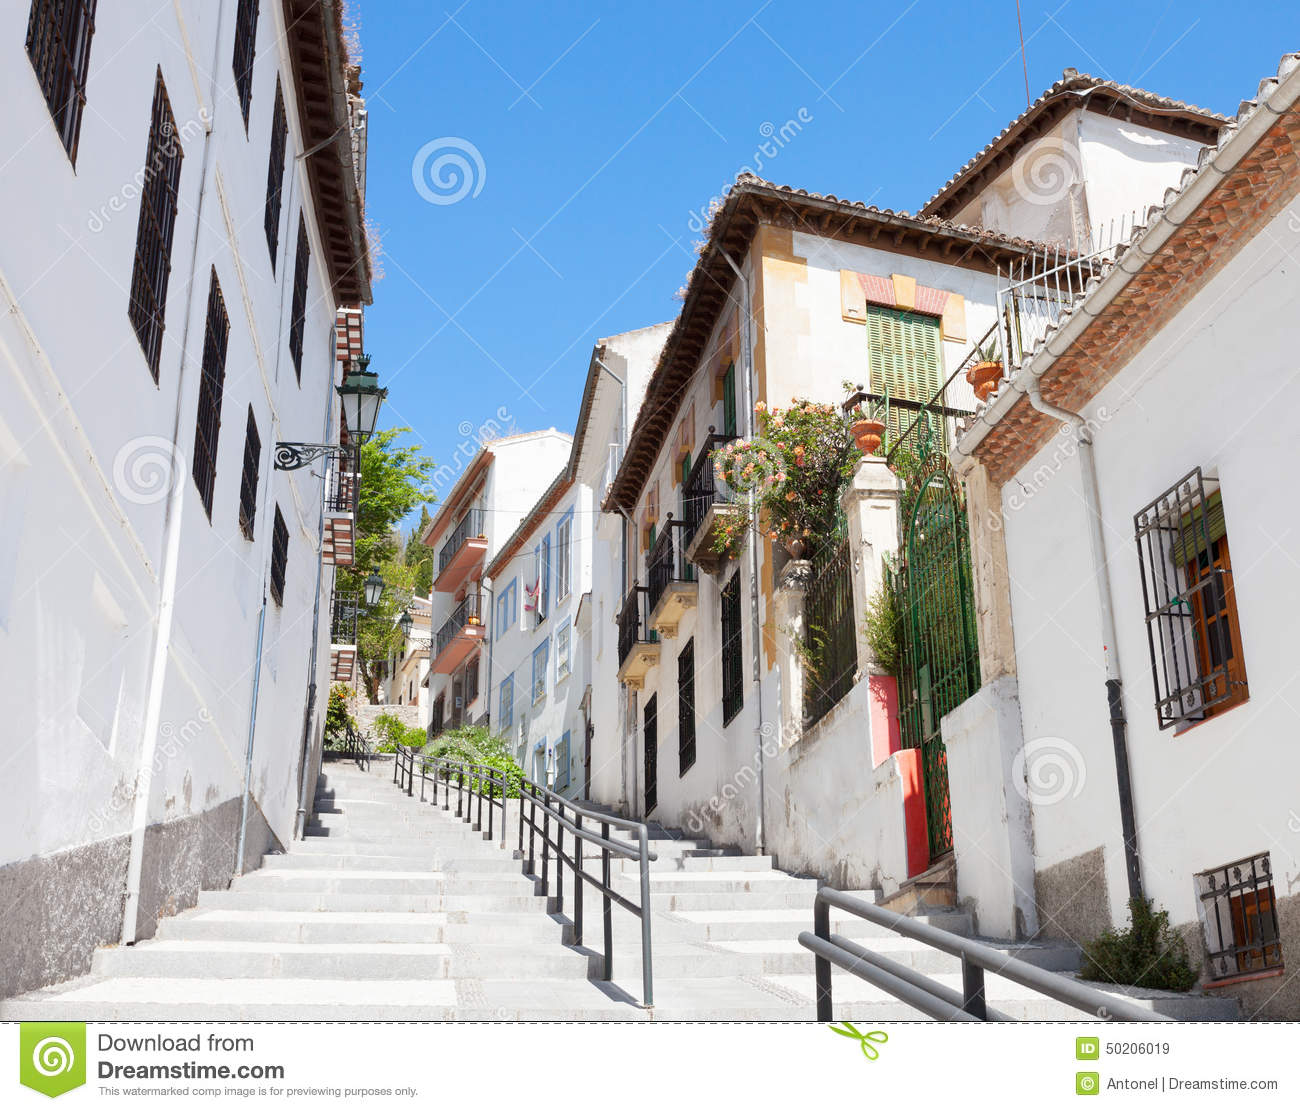 Granada spain stock photo image 50206019 for Old traditional houses